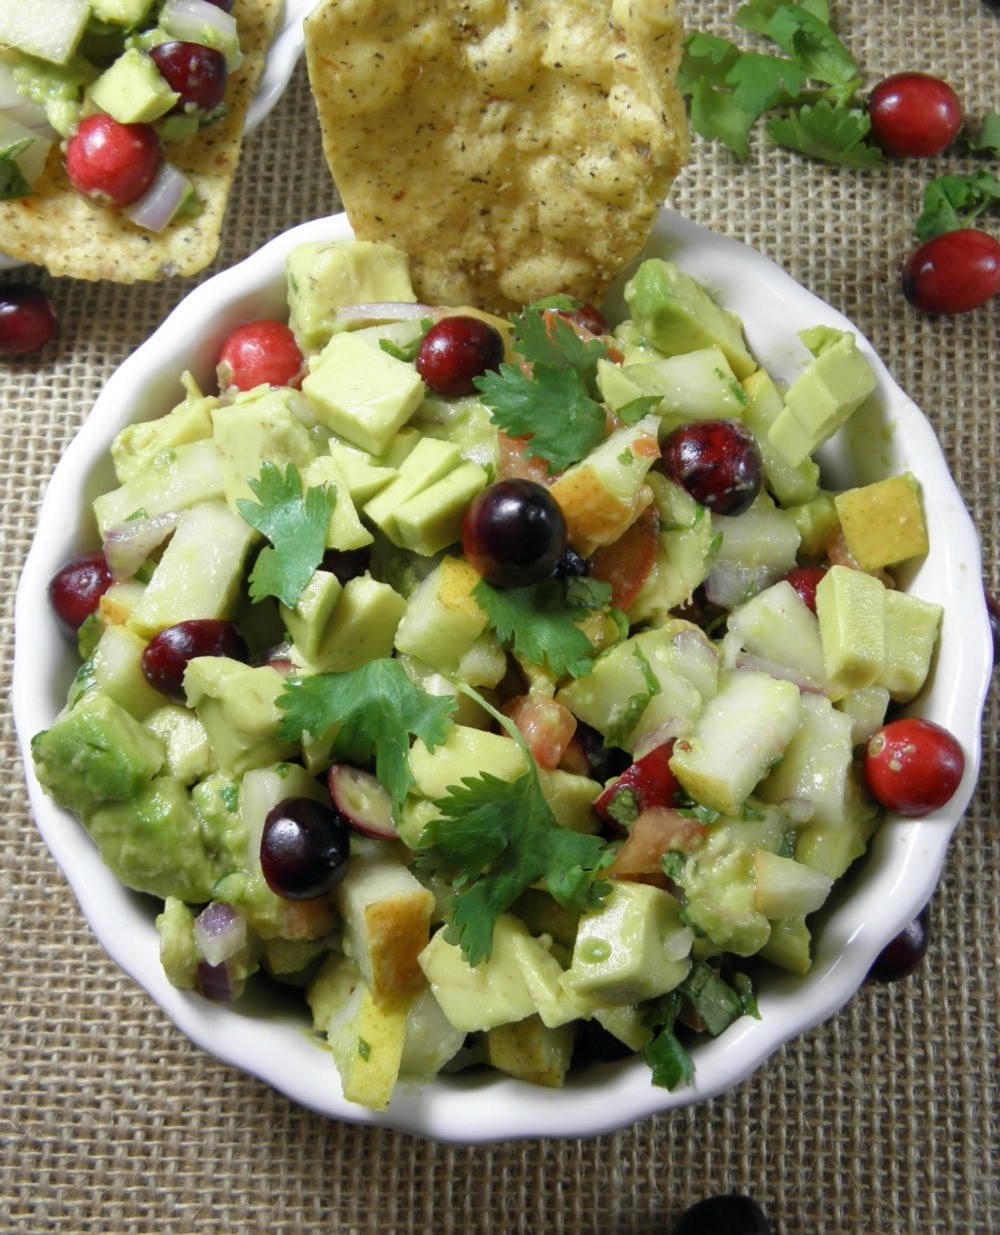 Avocado and fruit relish that is a party hit everytime